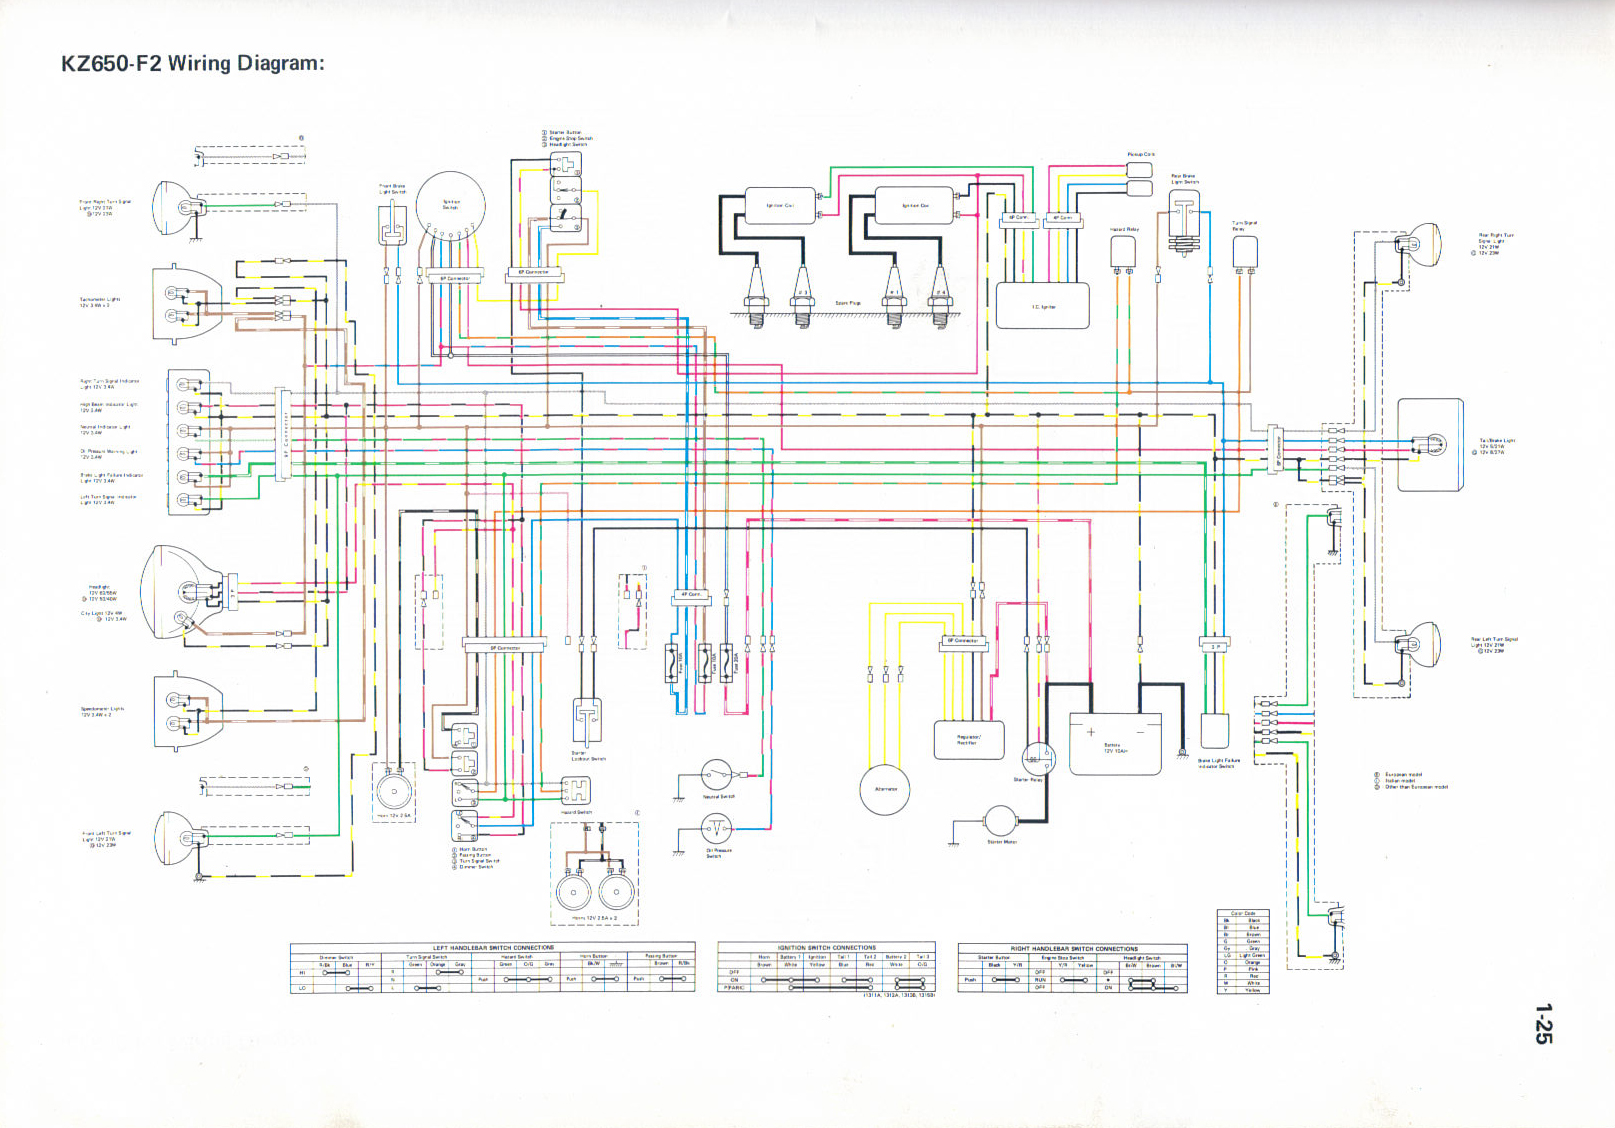 1978 z650 wiring diagram 2002 ford f150 horn kz650 info diagrams